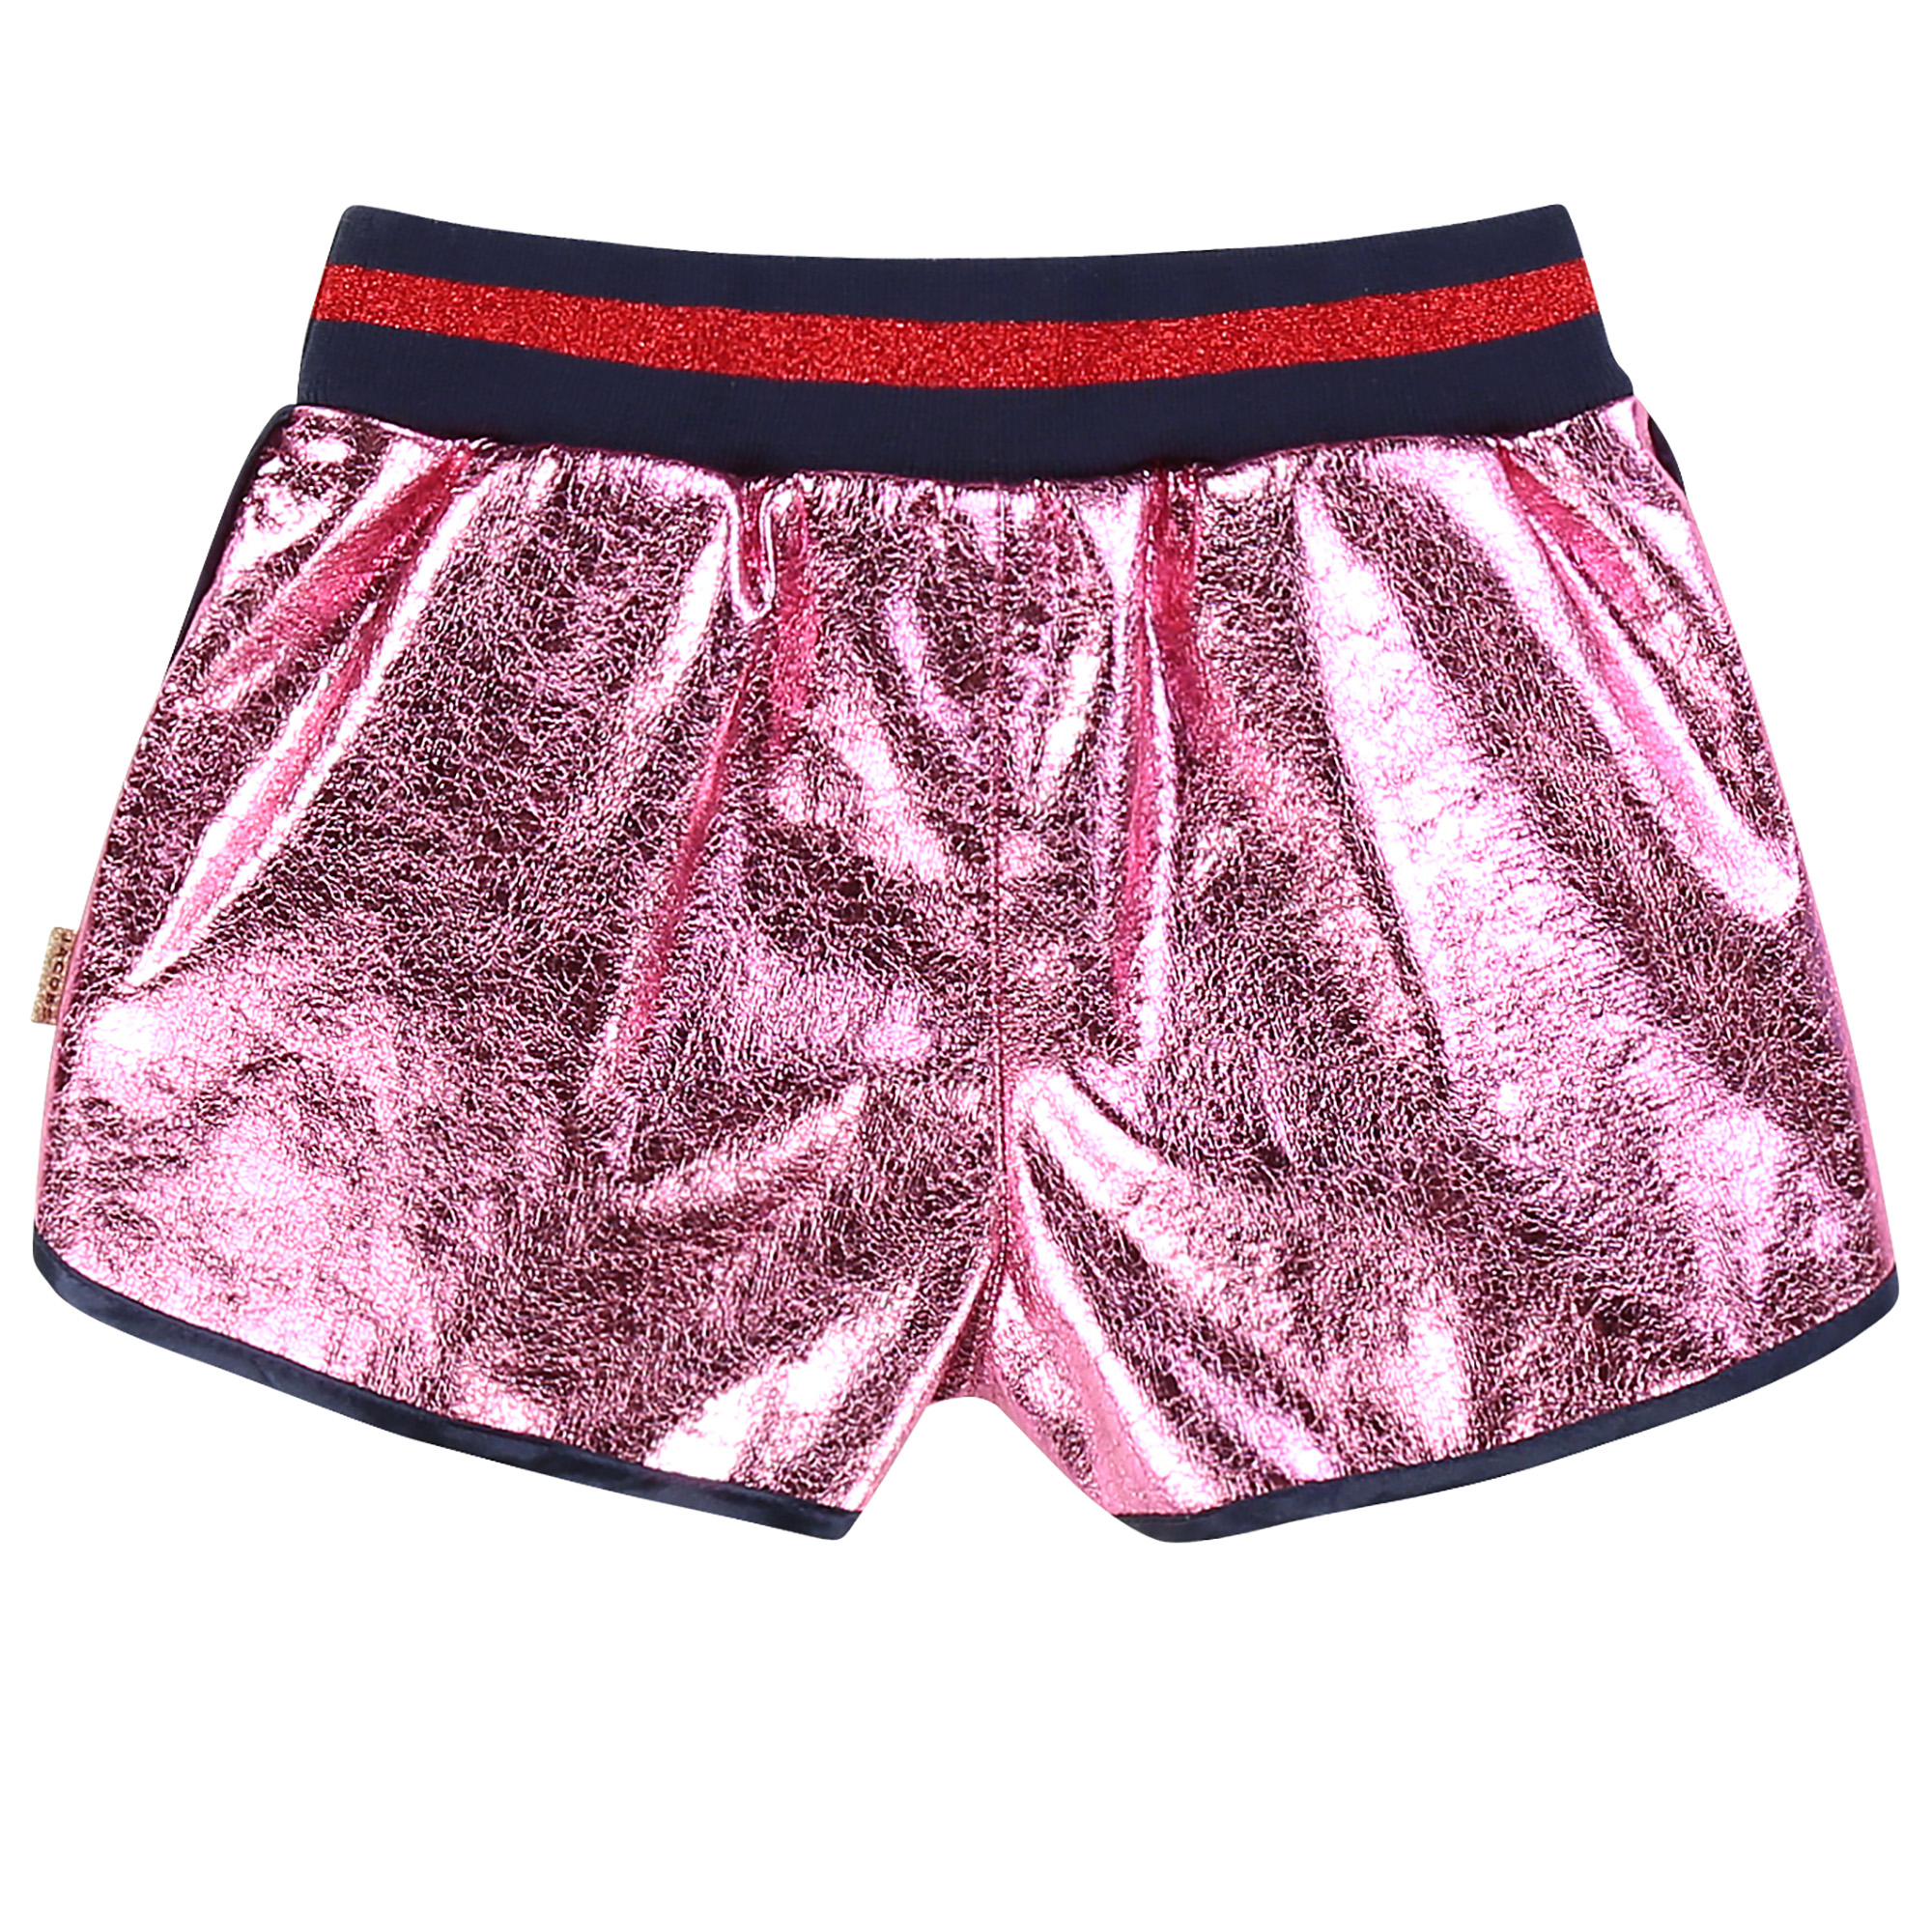 Synthetic leather shorts THE MARC JACOBS for GIRL